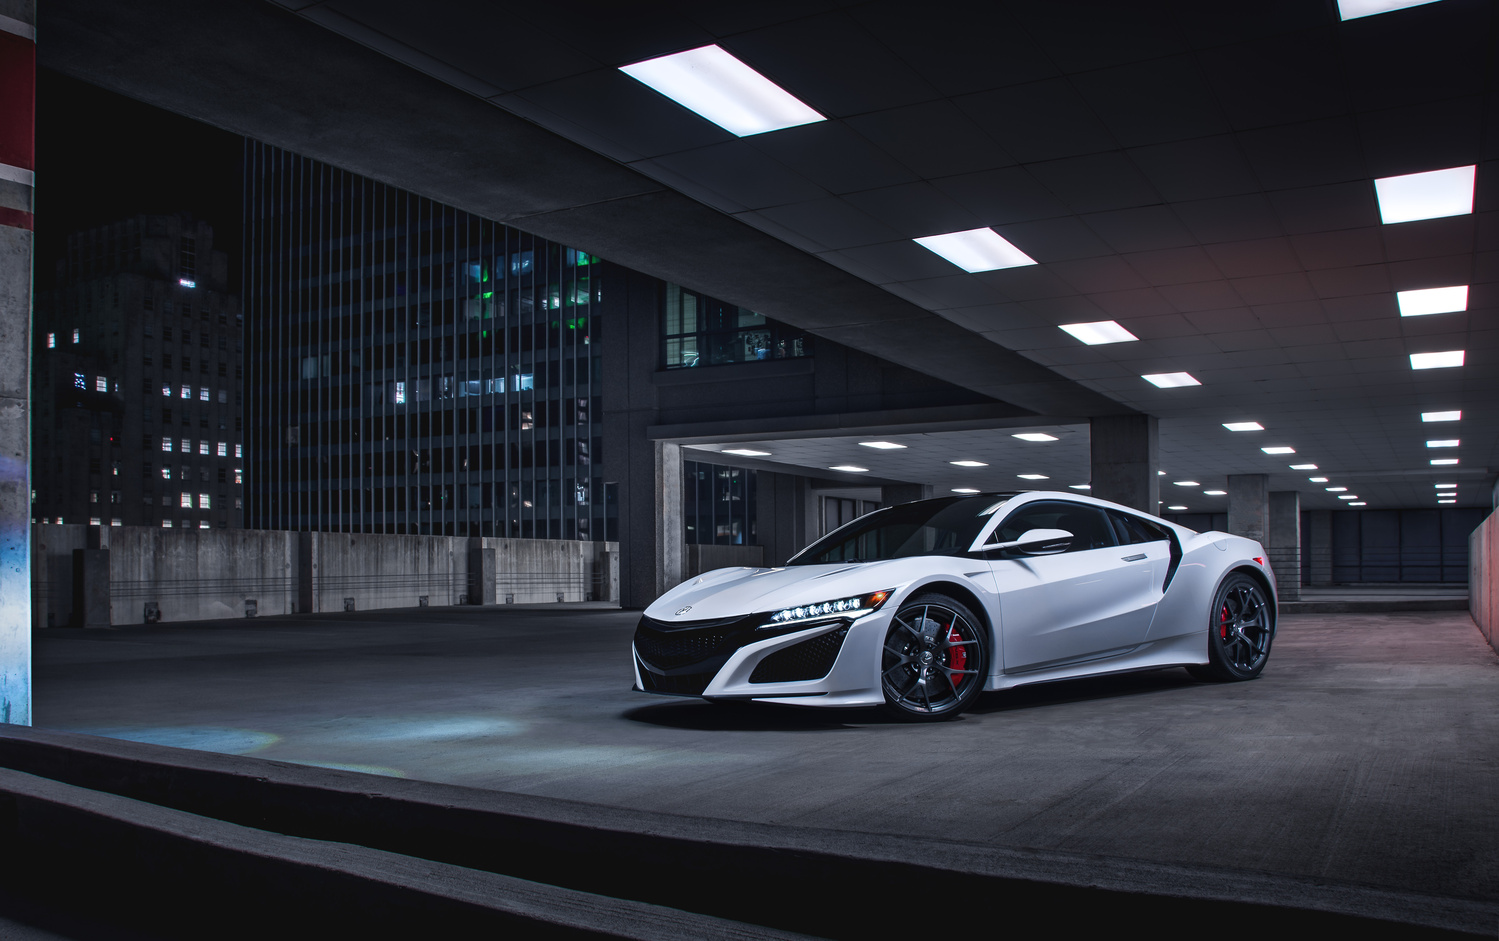 NSX hero shot by Jimmy Zhang